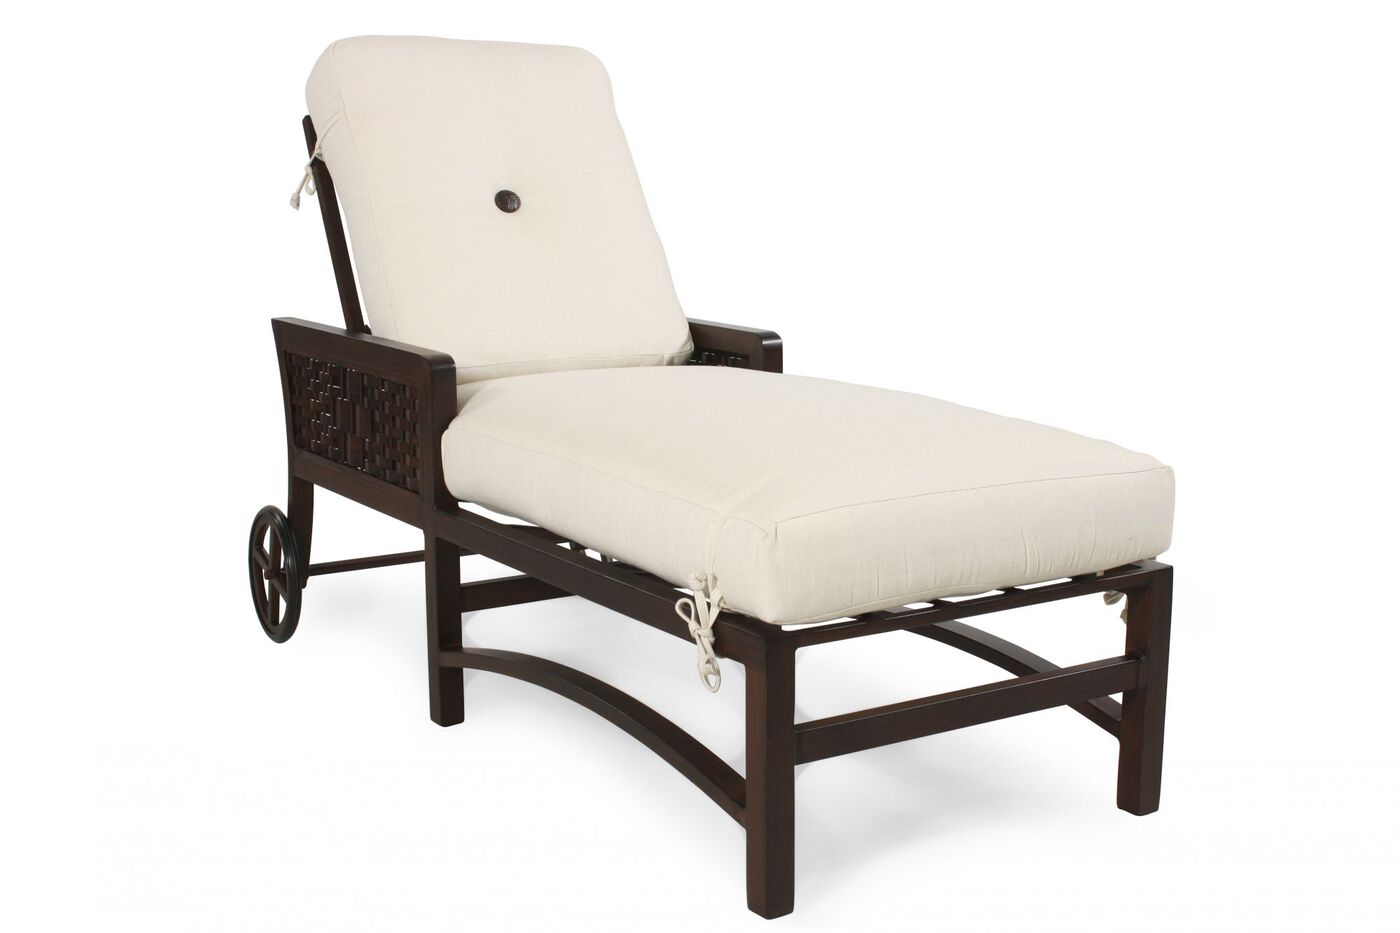 Castelle Spanish Bay Patio Chaise Lounge